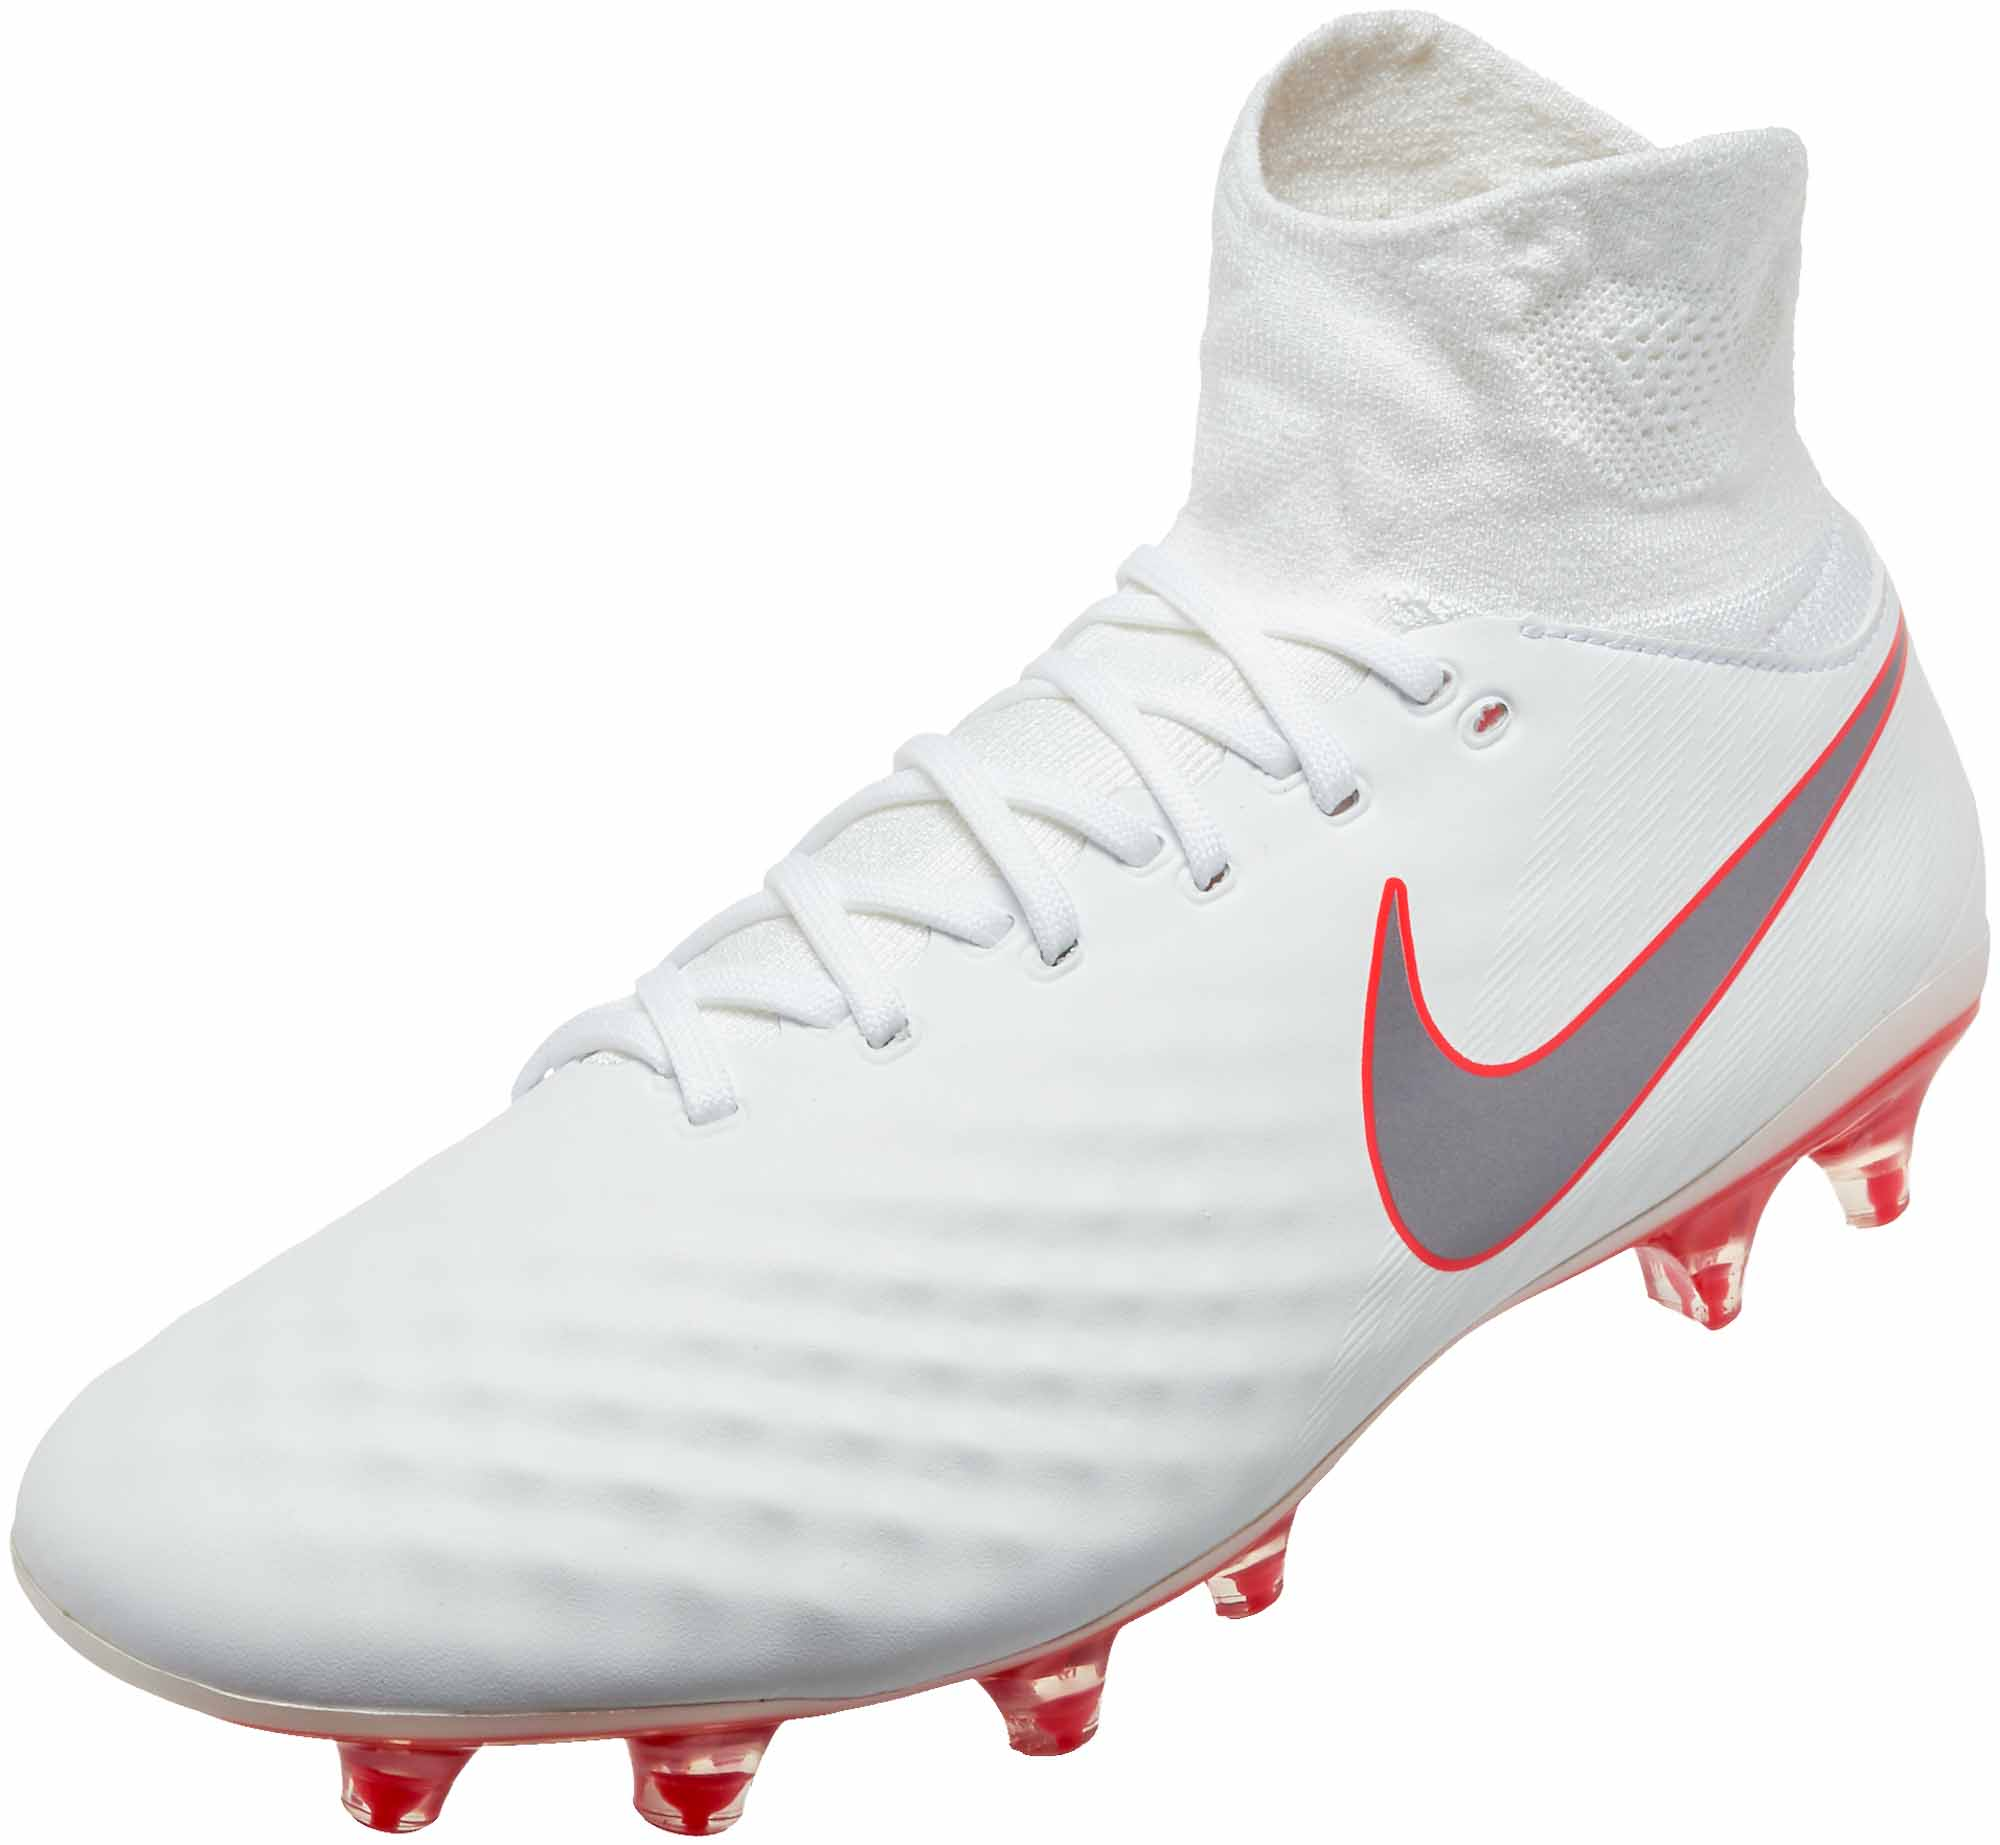 c24f0b41518 Nike Magista Obra II Pro DF FG - White   Metallic Cool Grey - Soccer ...